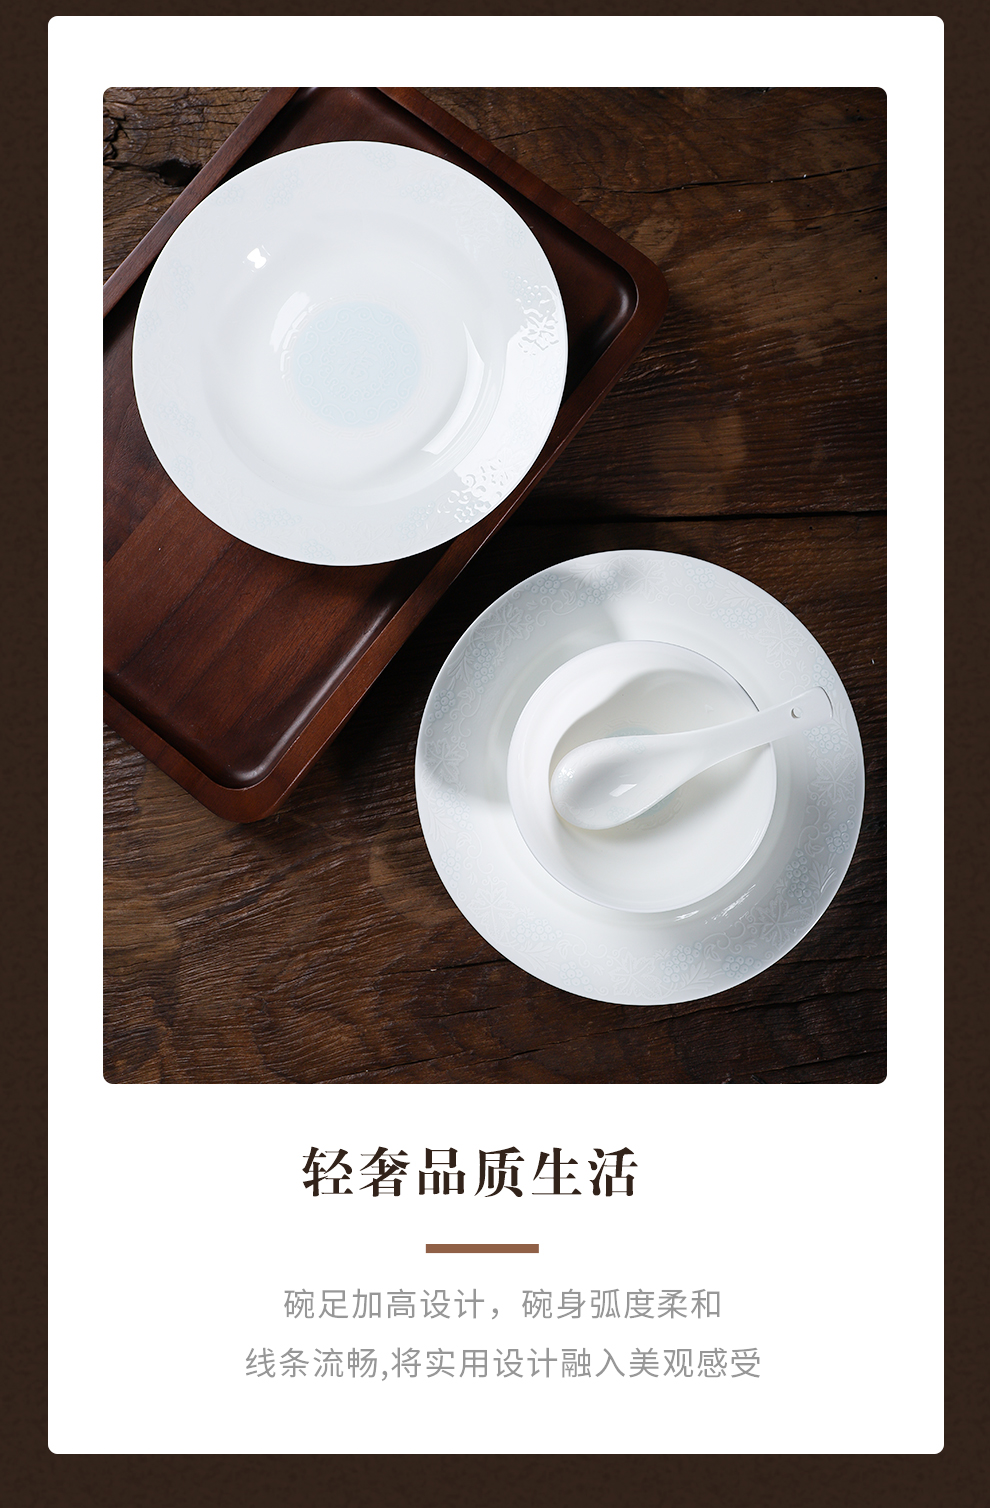 White porcelain tableware of pottery and porcelain of jingdezhen flagship store suit household contracted bowl dish dish combination of key-2 luxury north ou feng